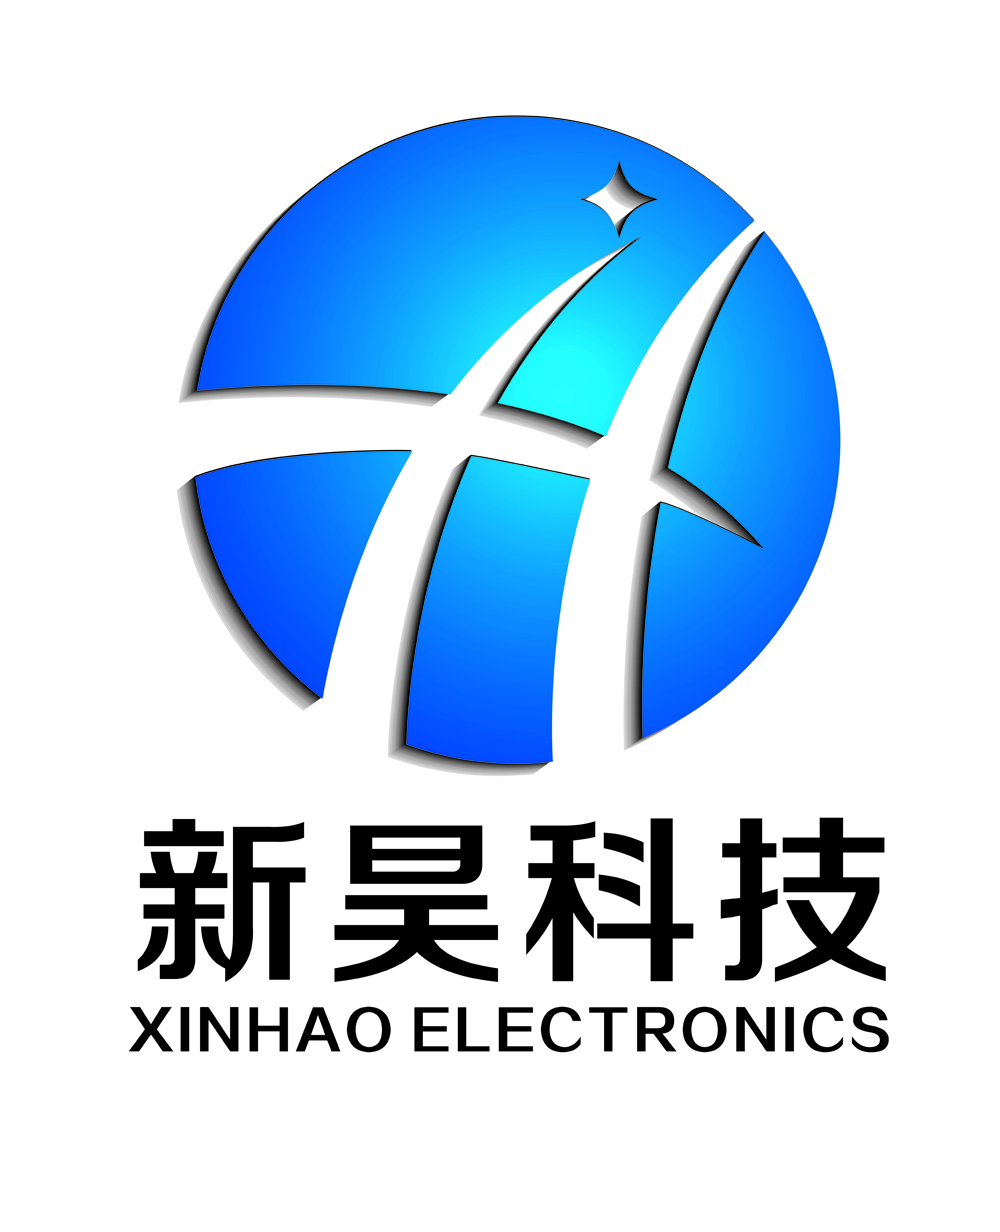 Lanzhou Xinhao Electronics Technology Co.,Ltd